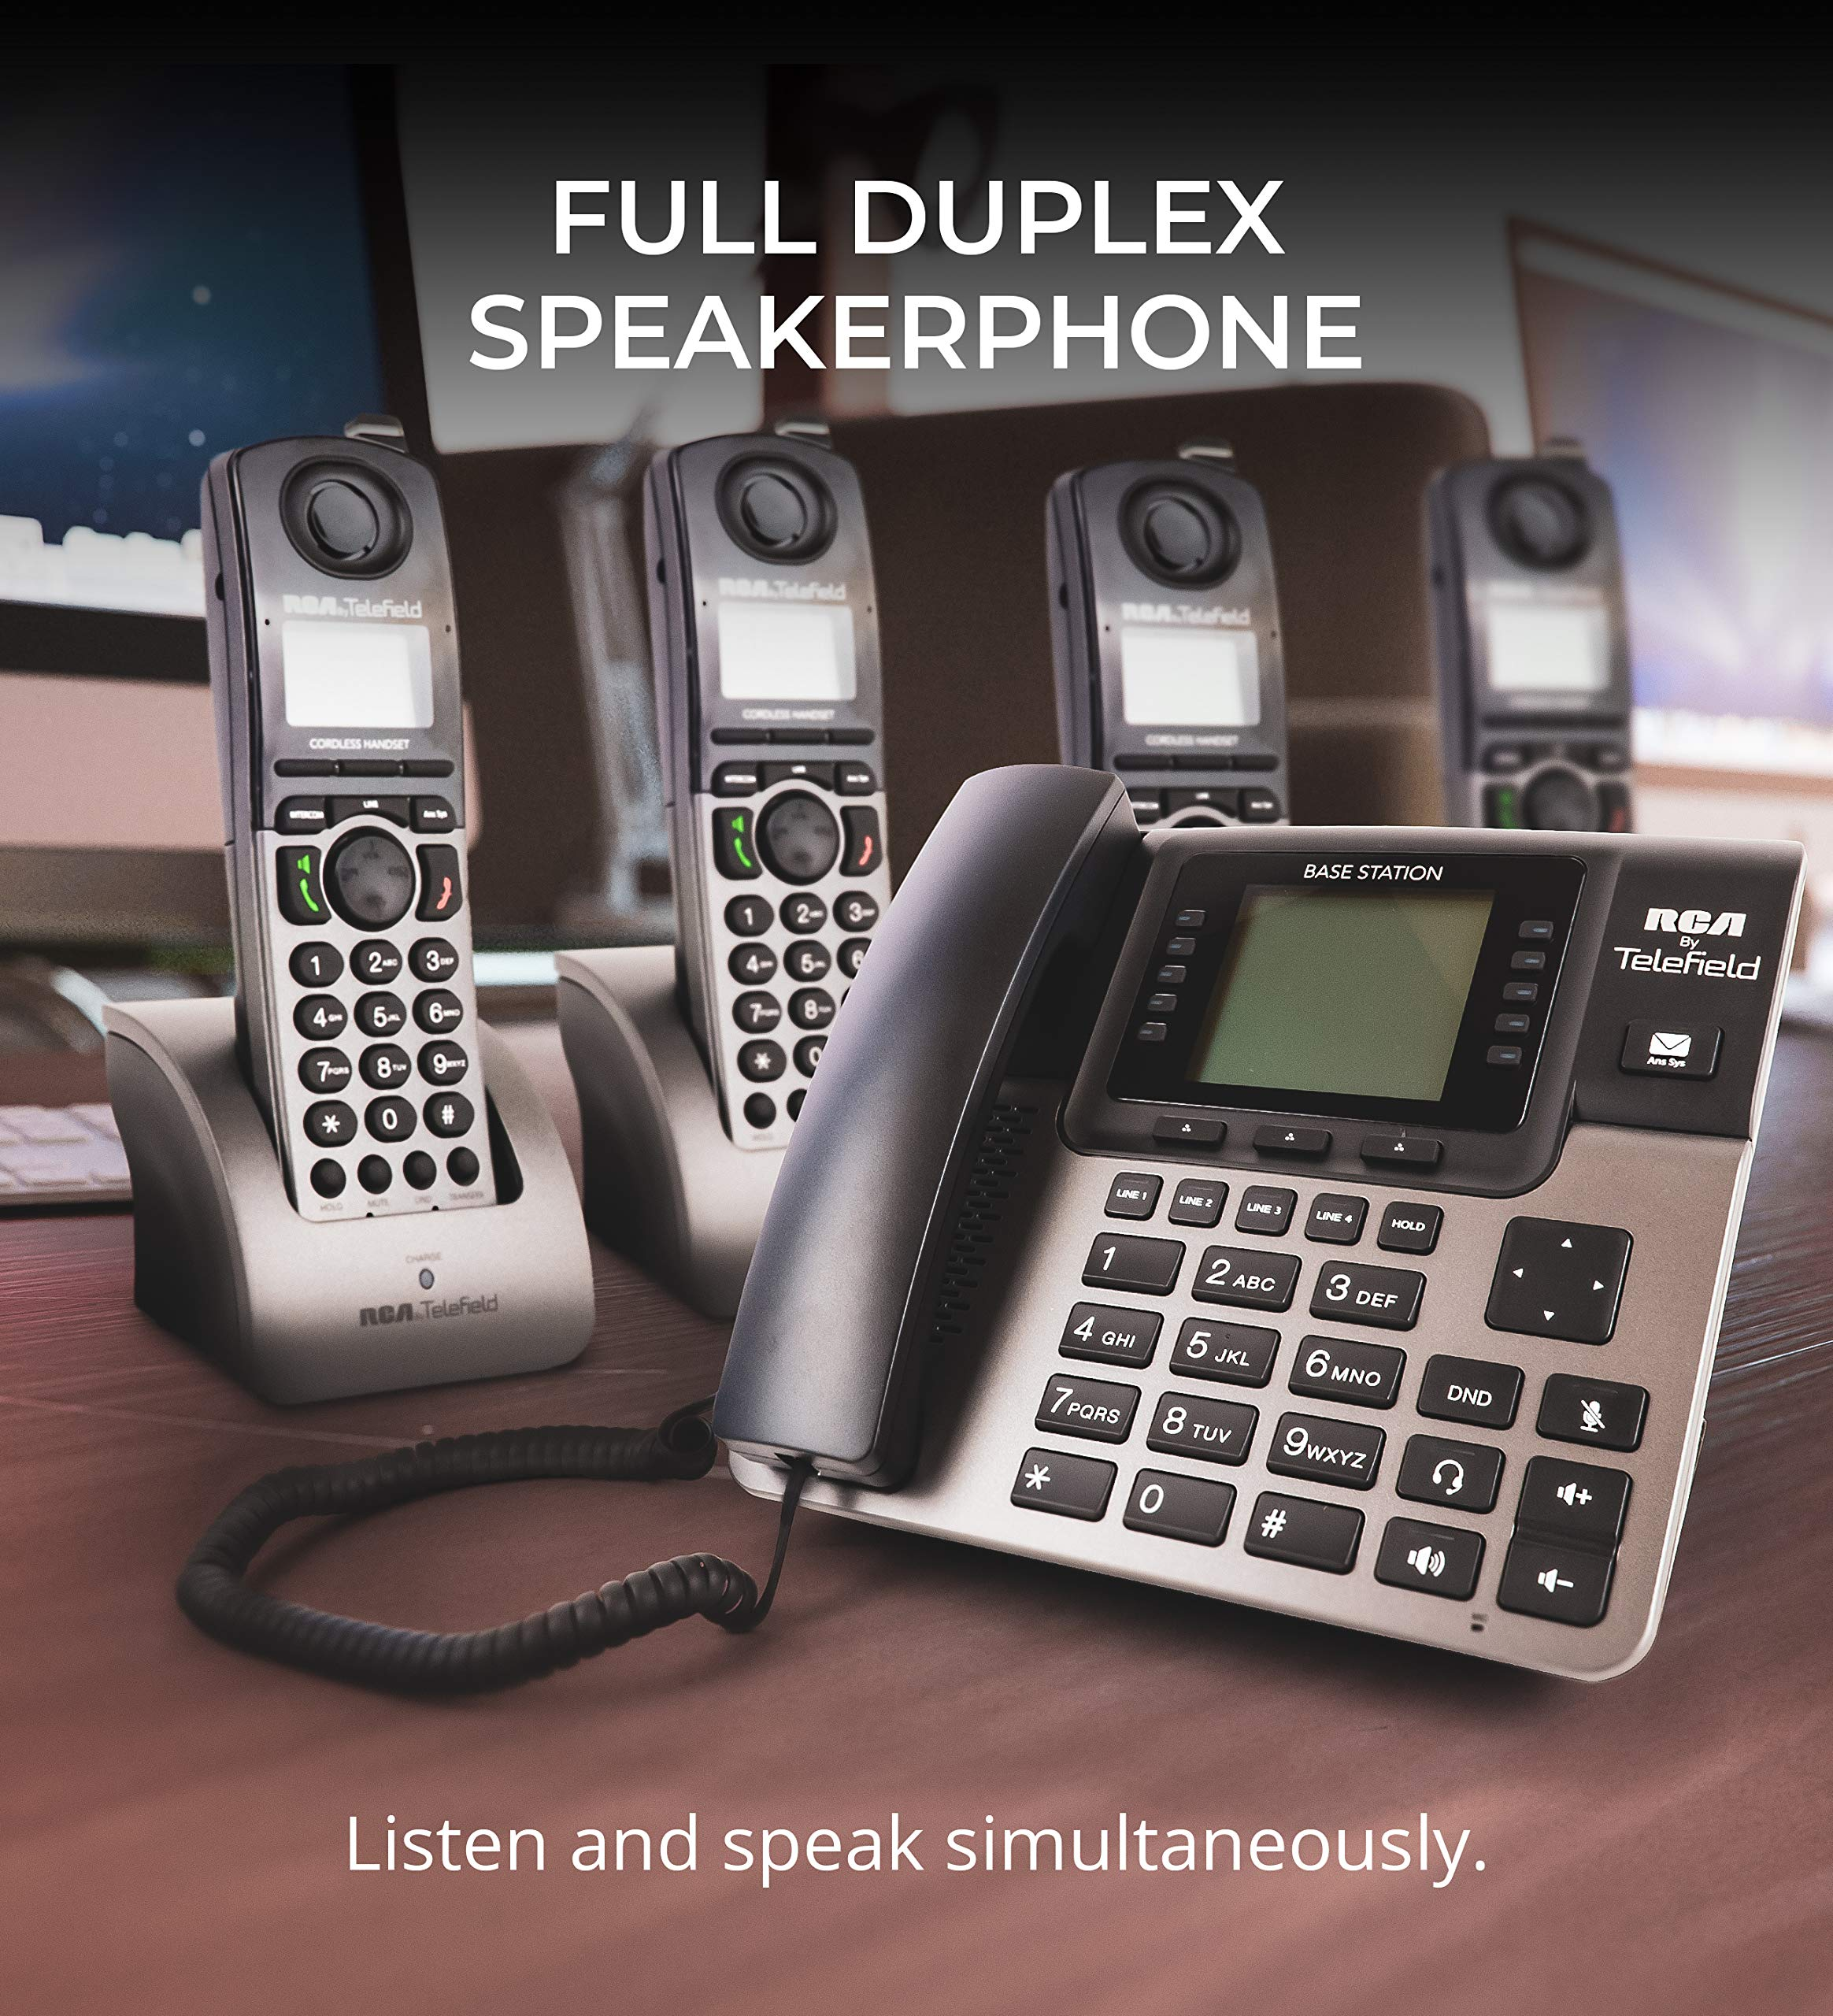 RCA U1000 Unison 4-Line Expandable Phone System - Full-Duplex Speakerphone Bundle with RCA U1200 DECT 6.0 Cordless Accessory Handsets (4-Pack) and 6 Blucoil AAA Batteries by blucoil (Image #7)